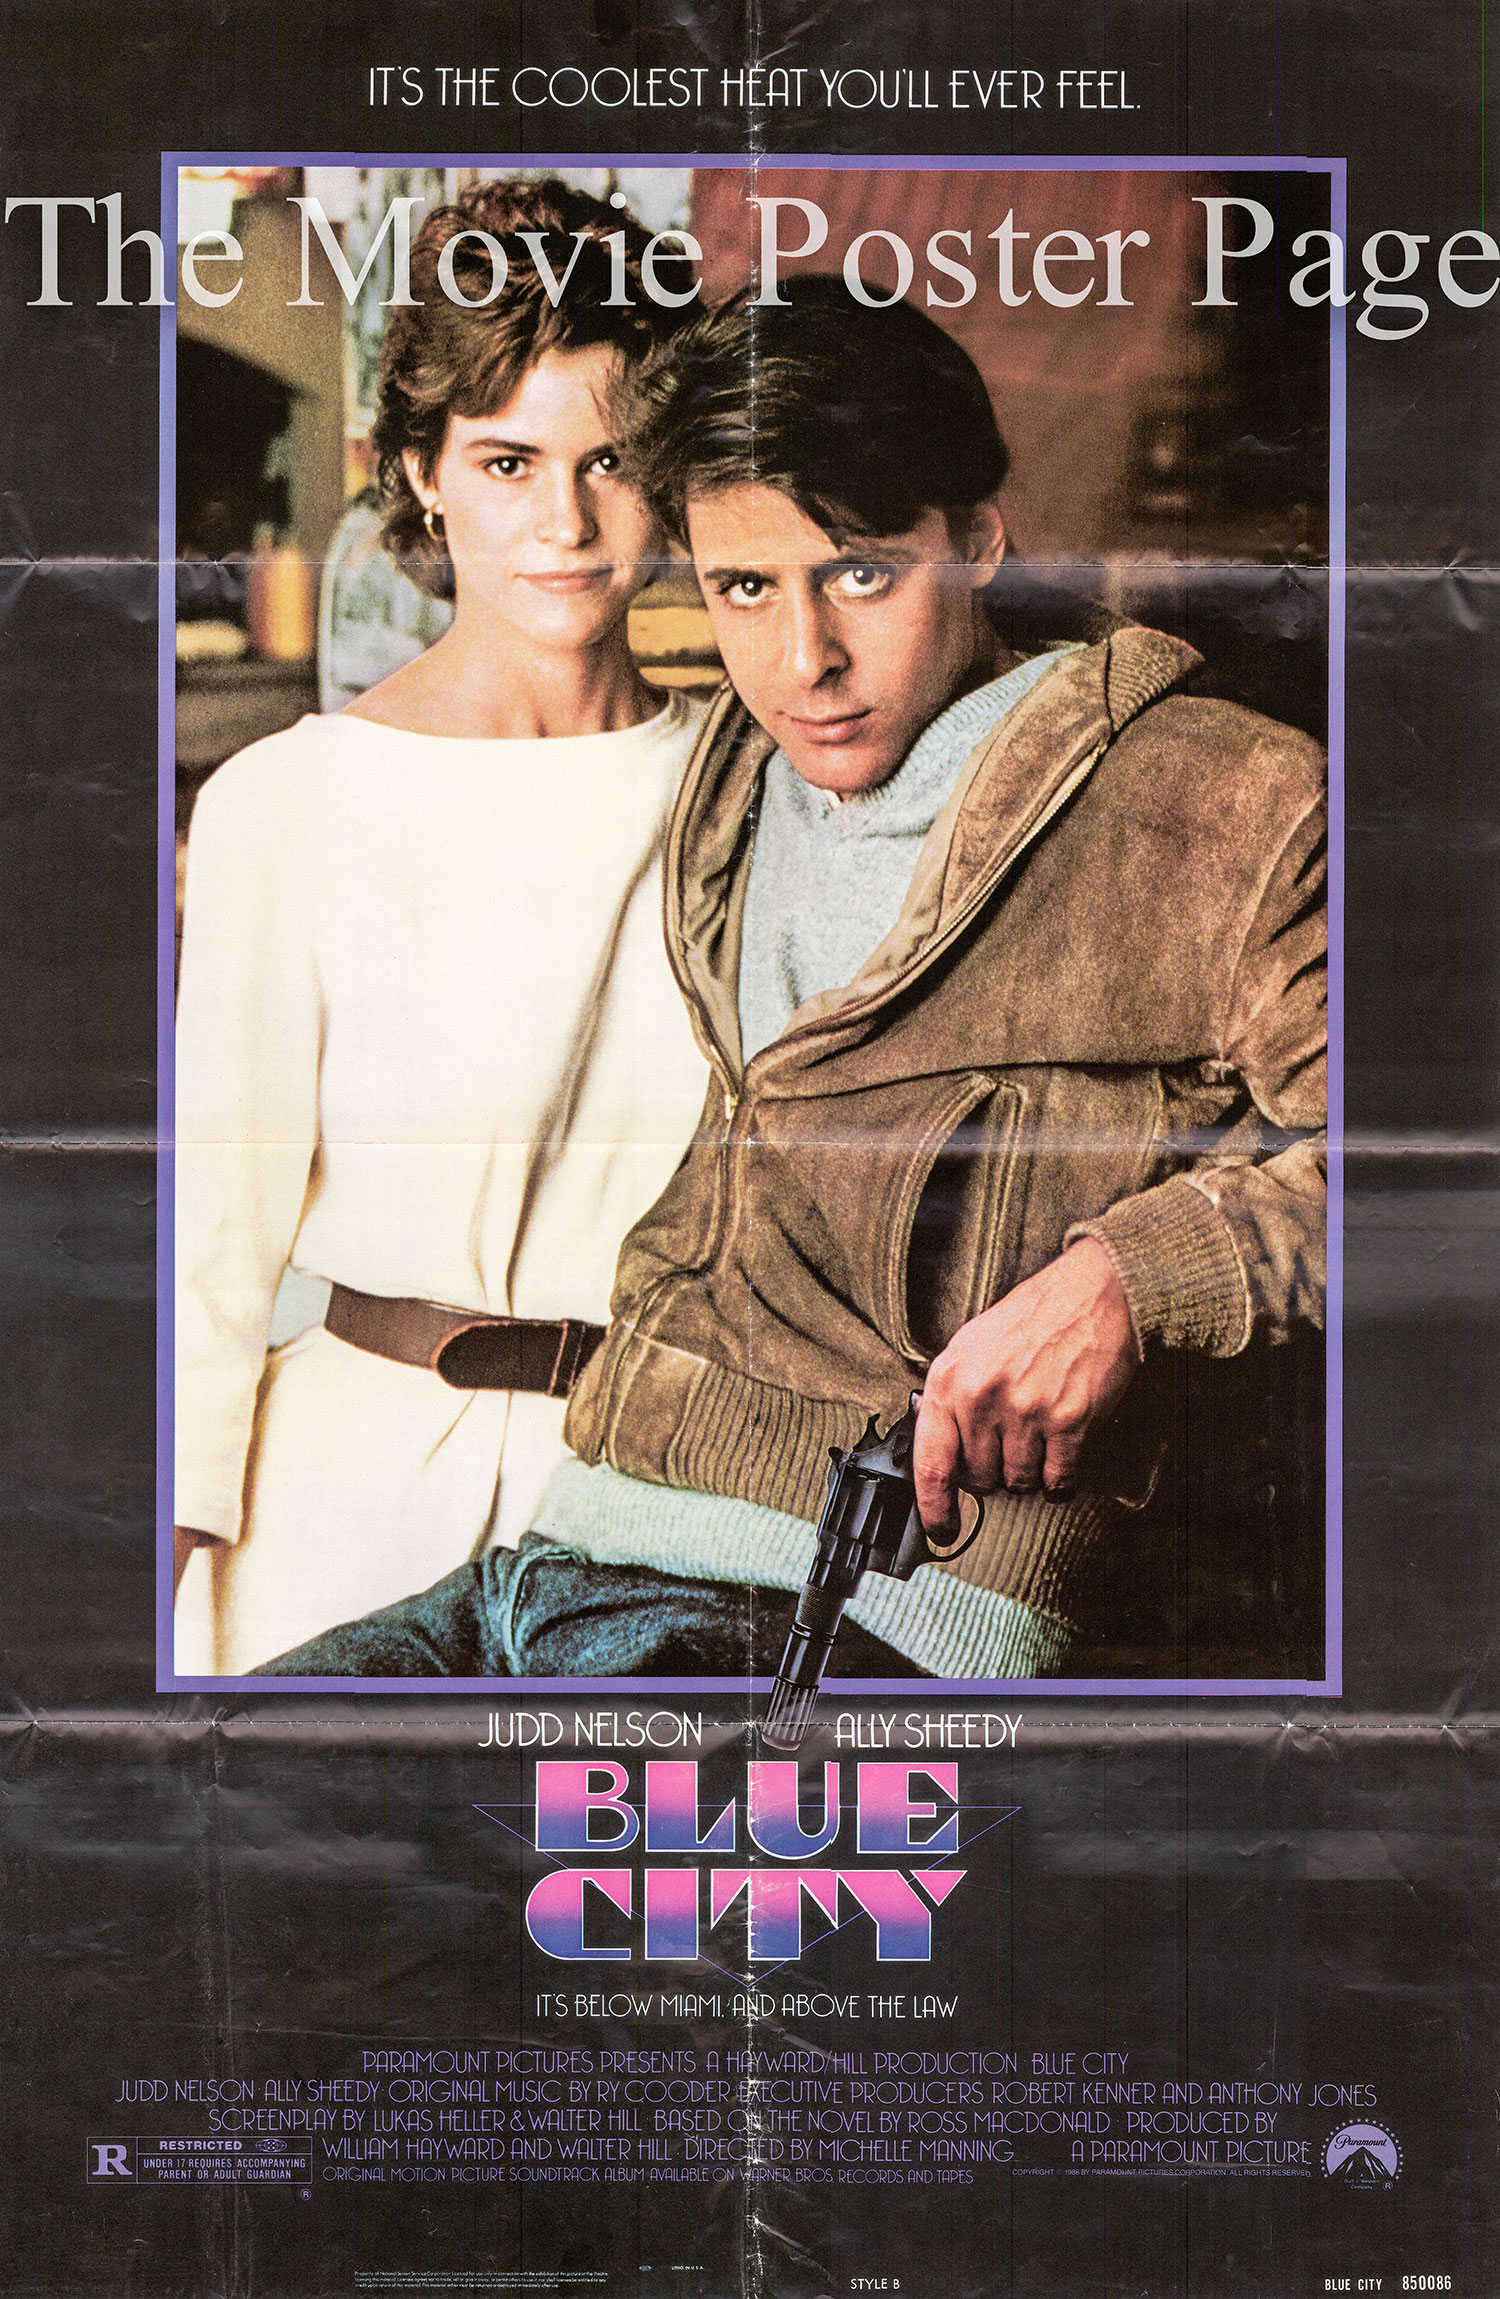 Pictured is a US one-sheet poster for the 1986 Michelle Manning film Blue City starring Ally Sheedy.